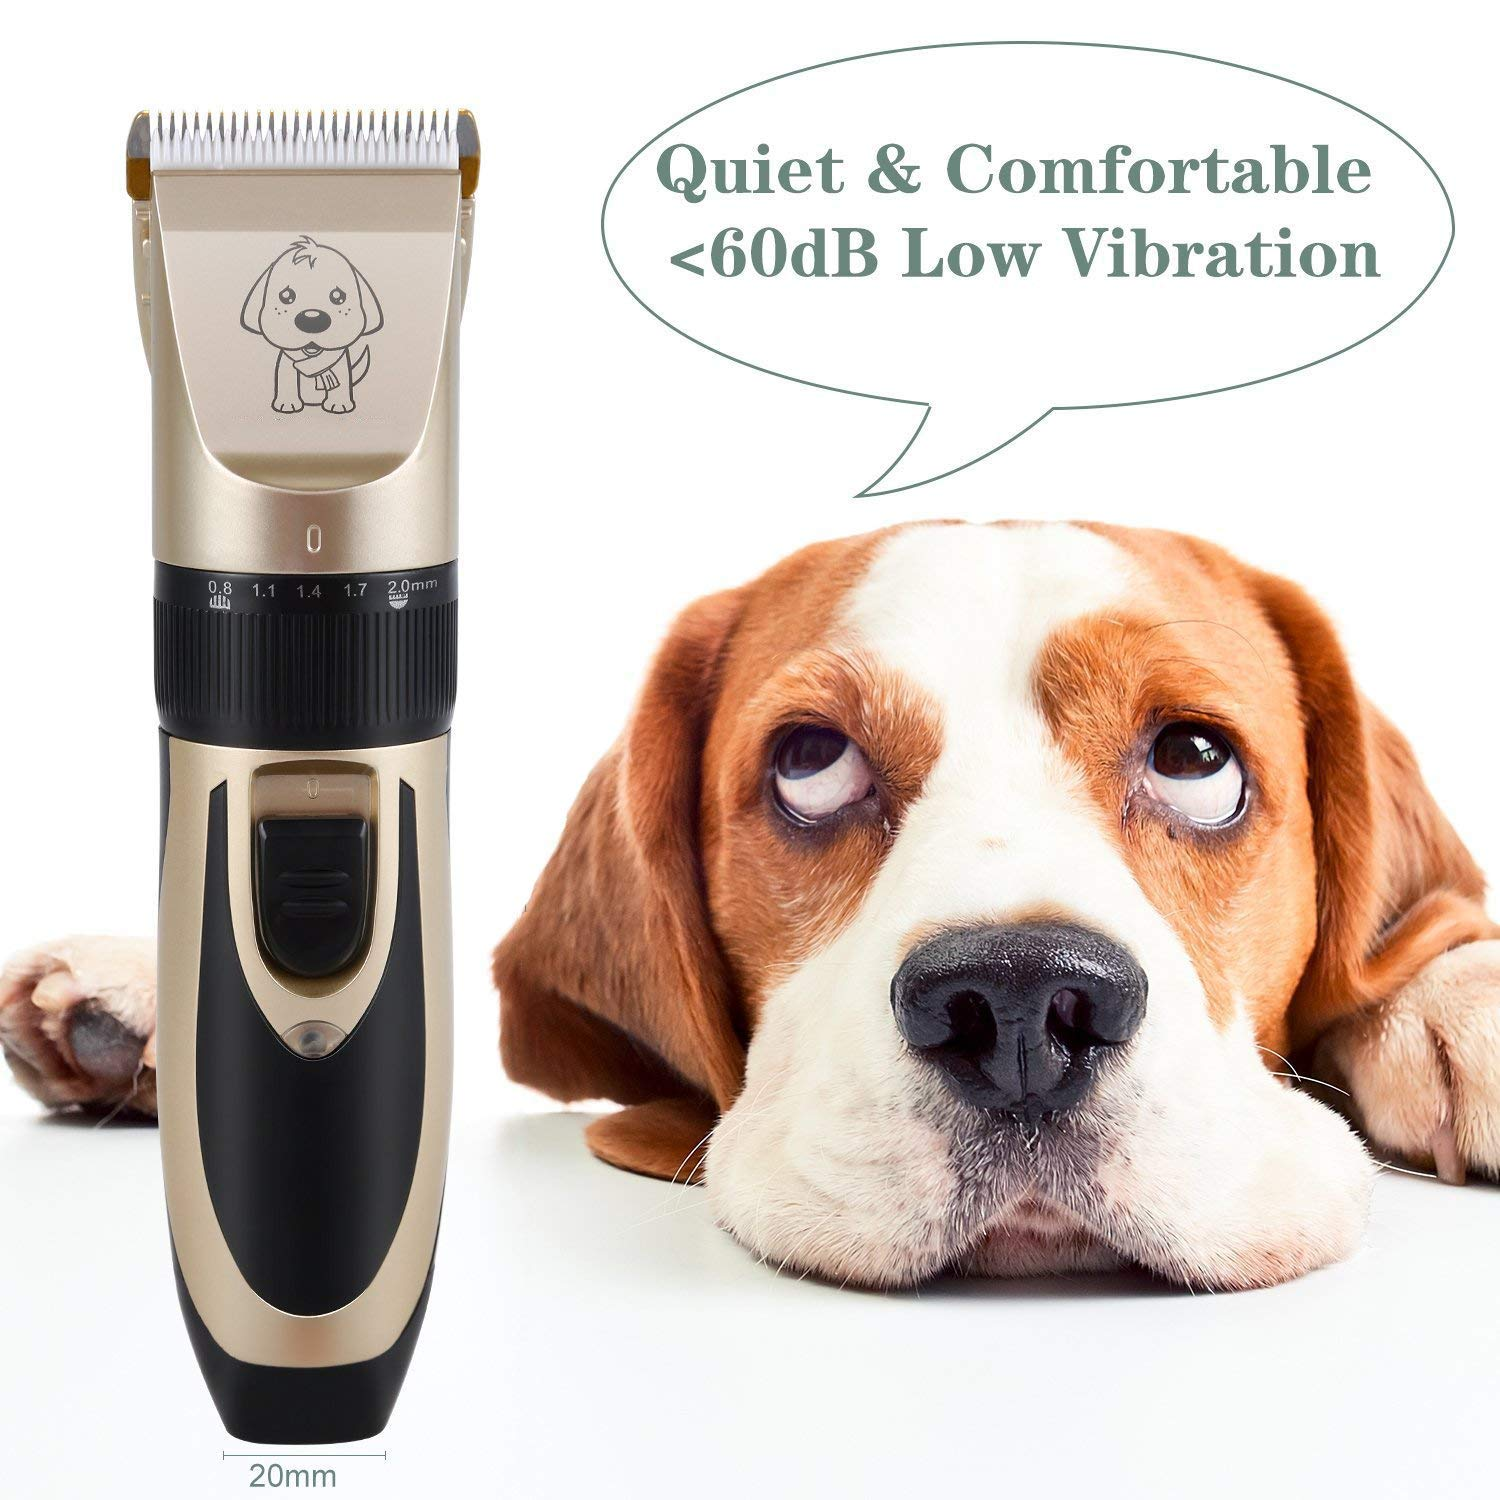 LNLJ Pet Hair Clipper Beauty Set  Rechargeable Cordless Hair Clipper for Cats And Dogs Low Noise And Low Vibration (Black+gold)